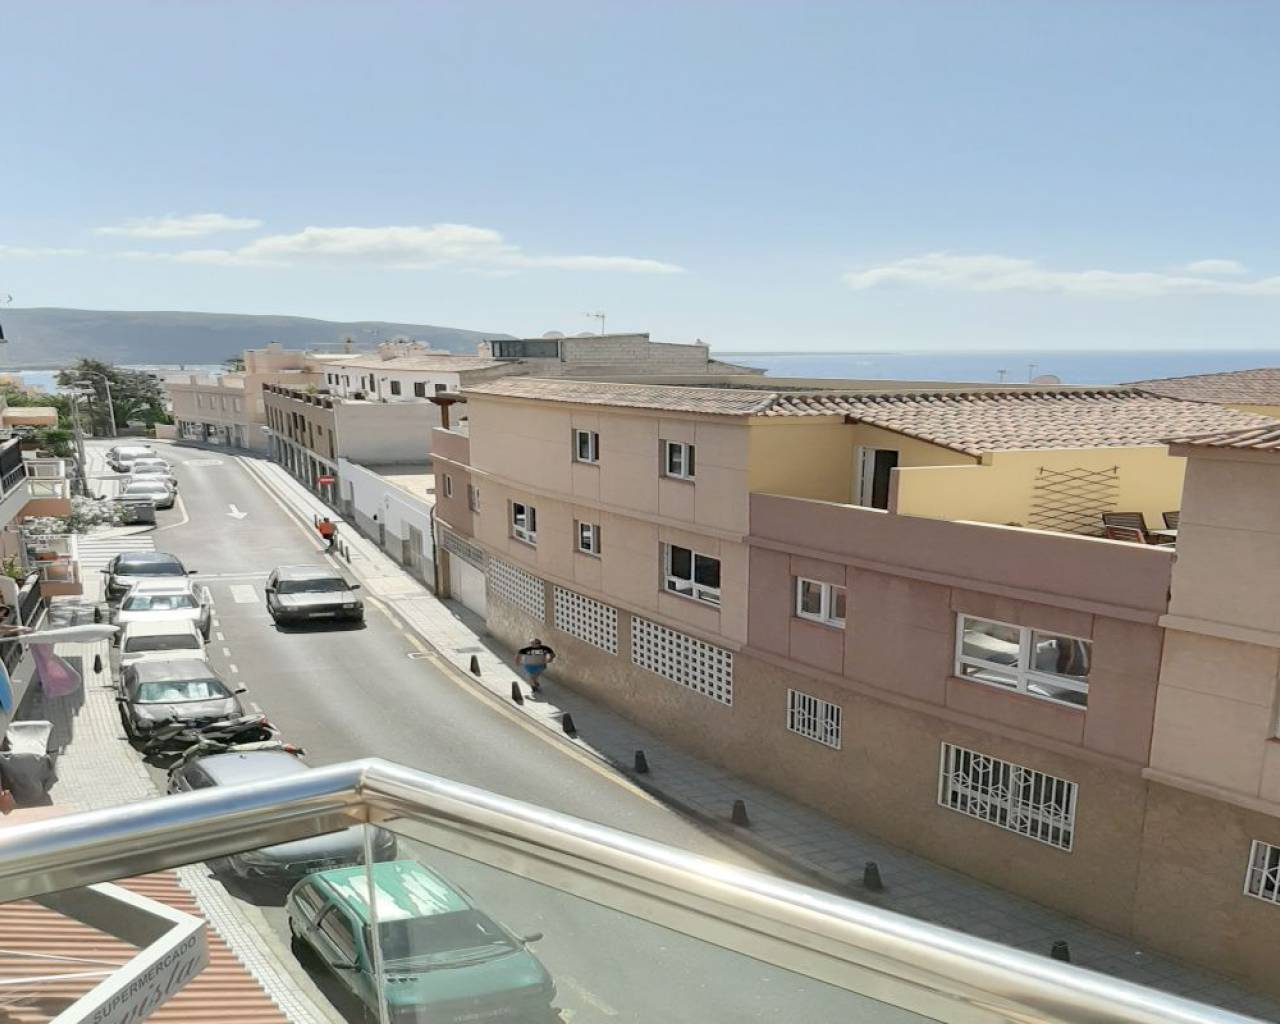 Apartment - Short term rental - Tenerife - Los Cristianos